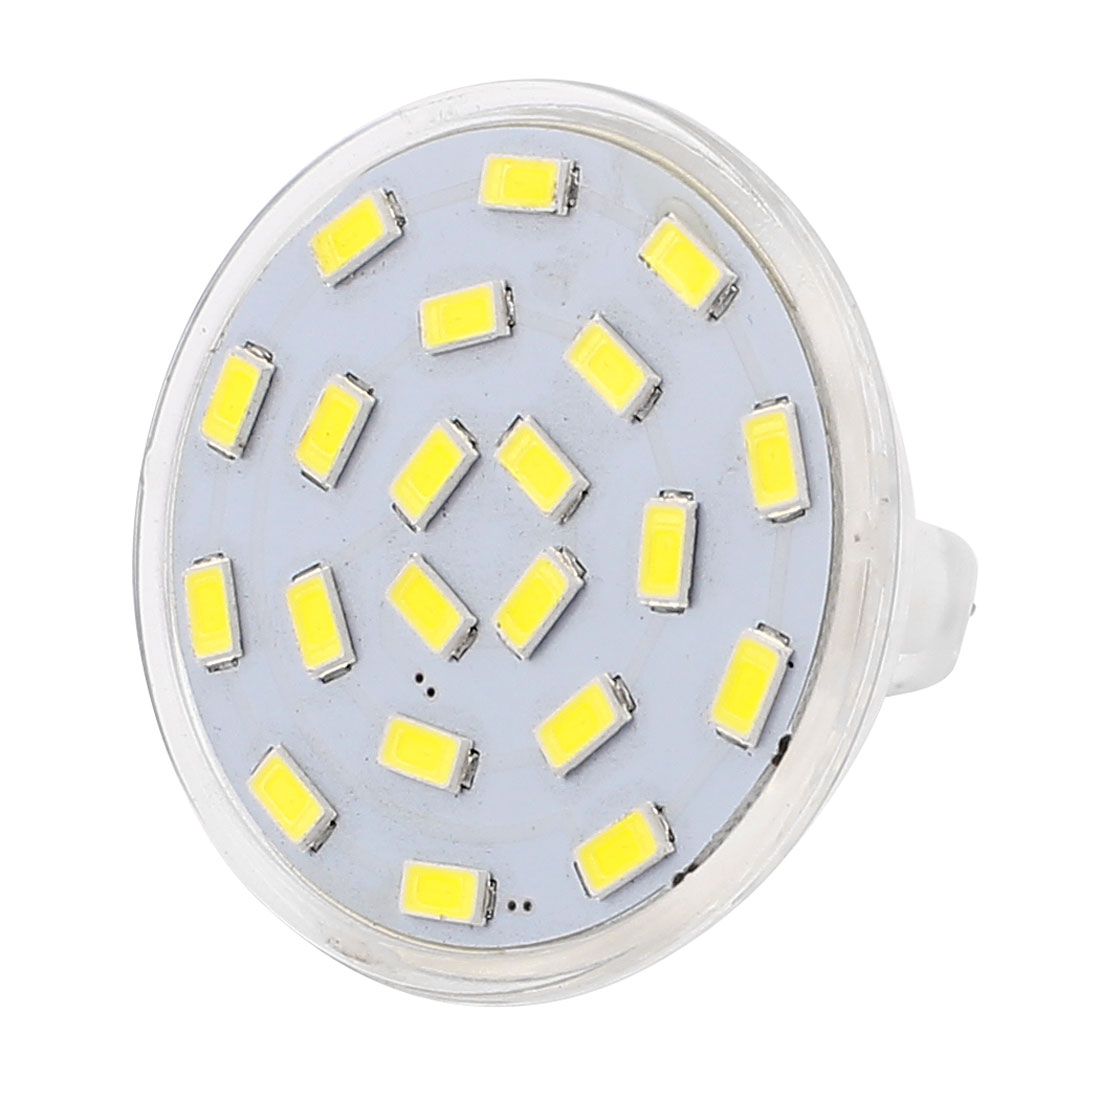 220V-240V 5W MR16 5730 SMD 21 LEDs LED Bulb Down Light Spotlight Lamp White